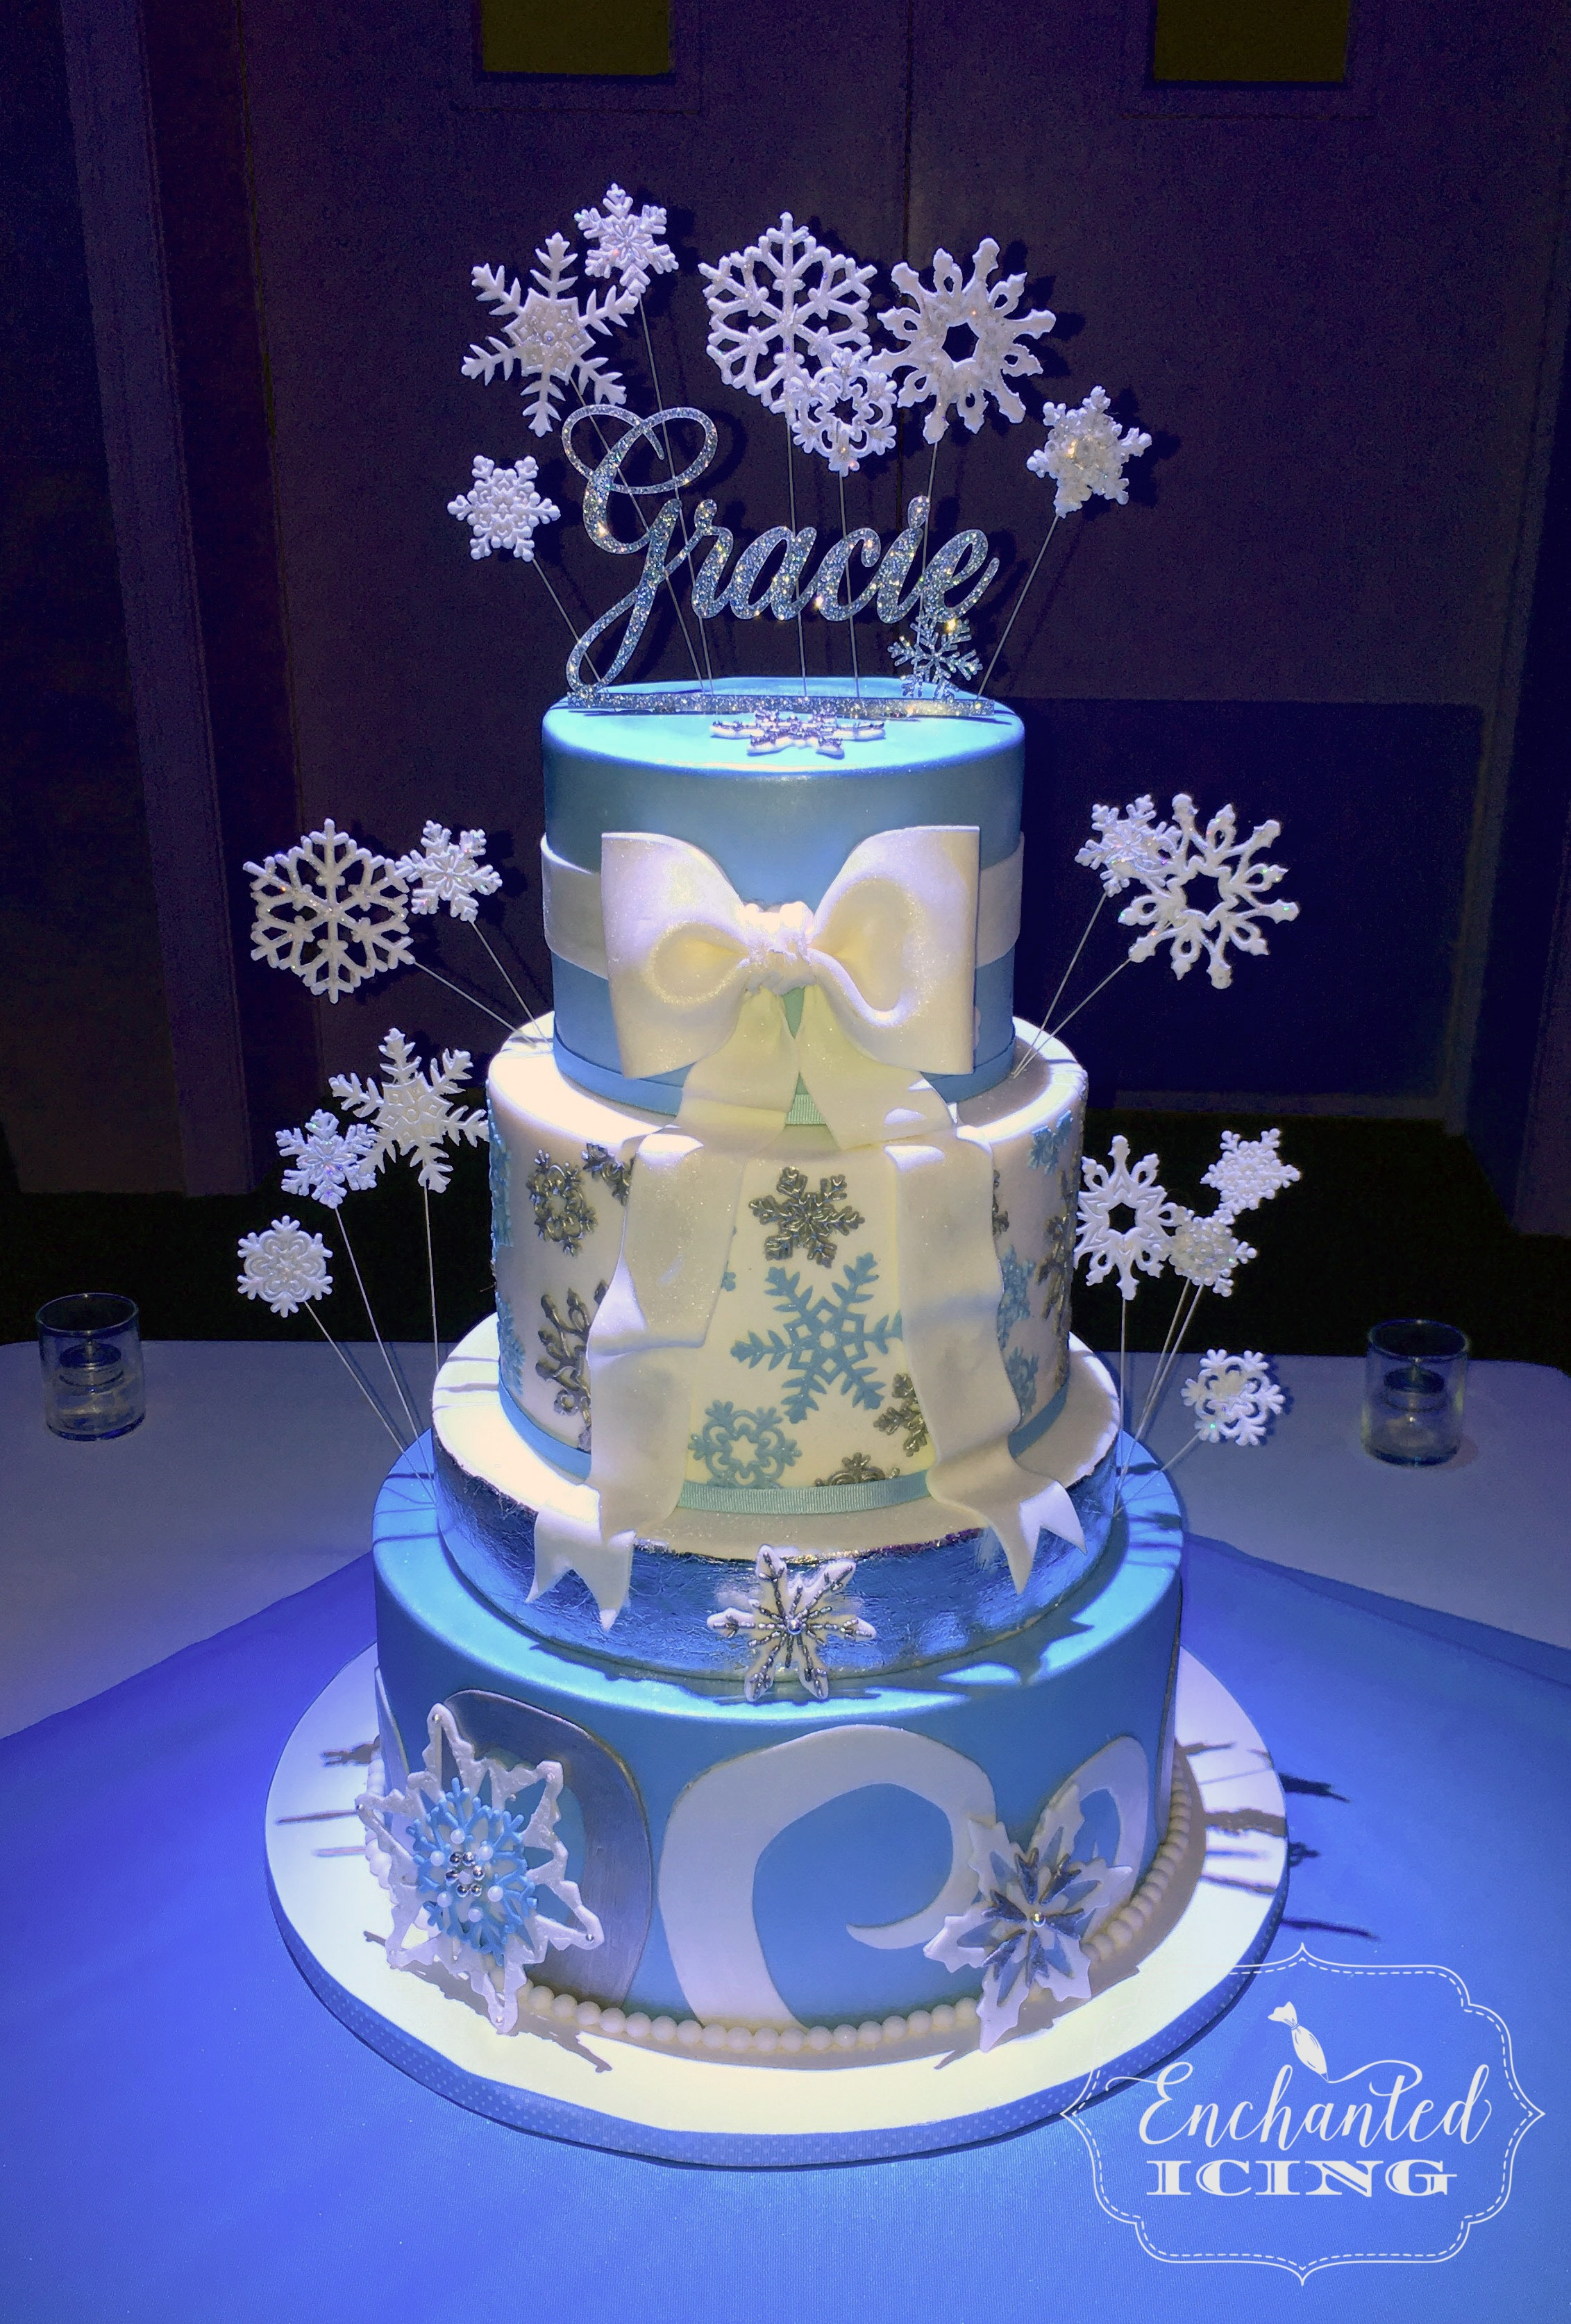 "Snowflake Cake For Gracie (Enchanted Icing) A special cake for a special young lady. Definitely not a ""Frozen"" cake!"